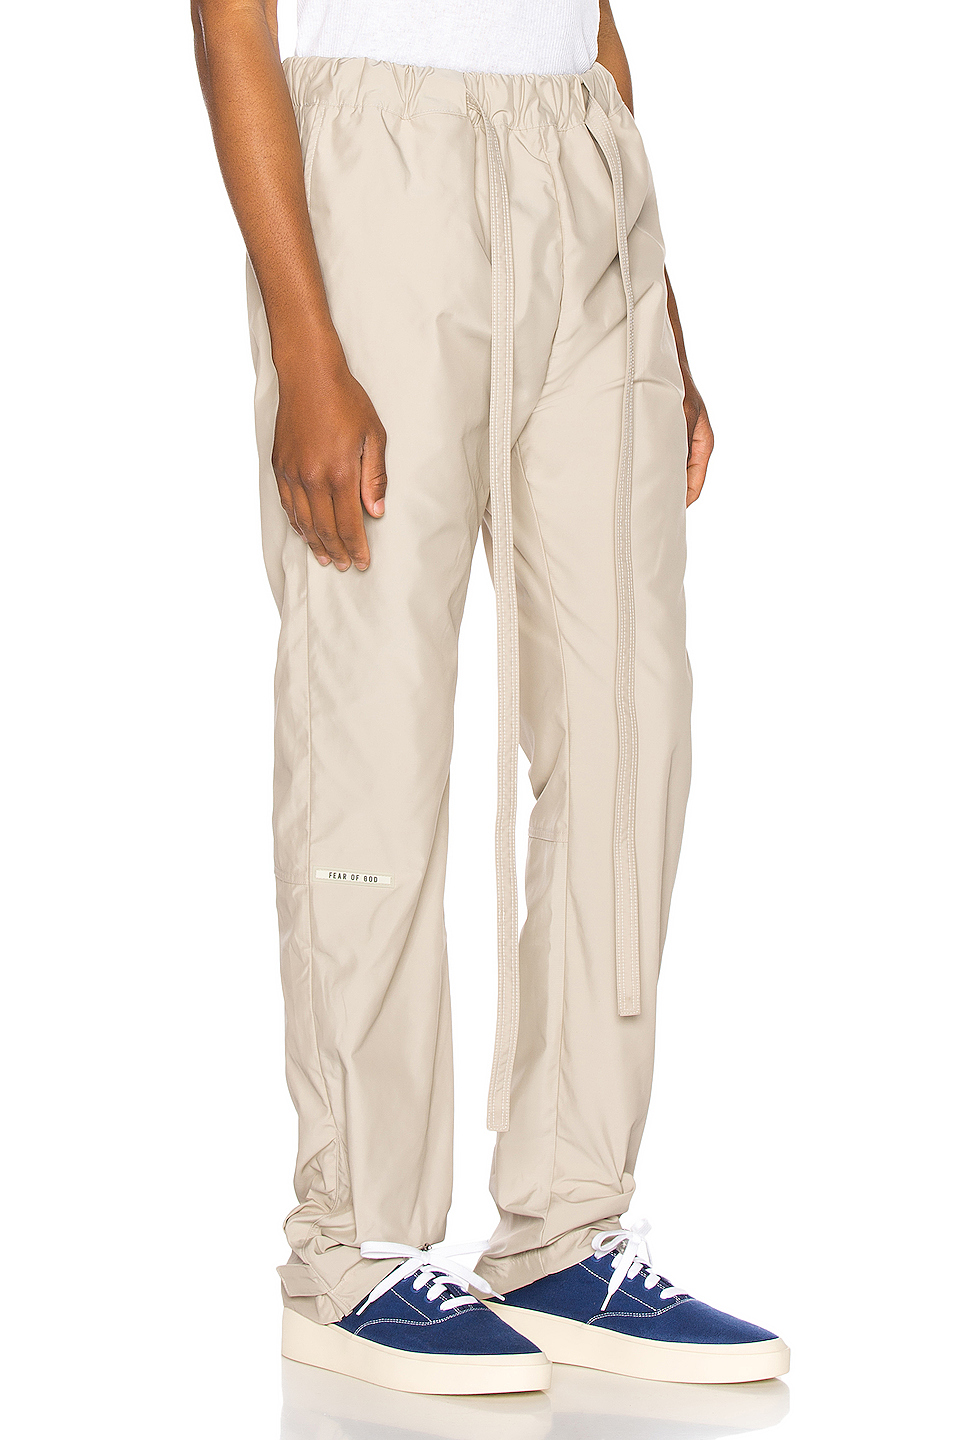 Fear of God Baggy Nylon Pant